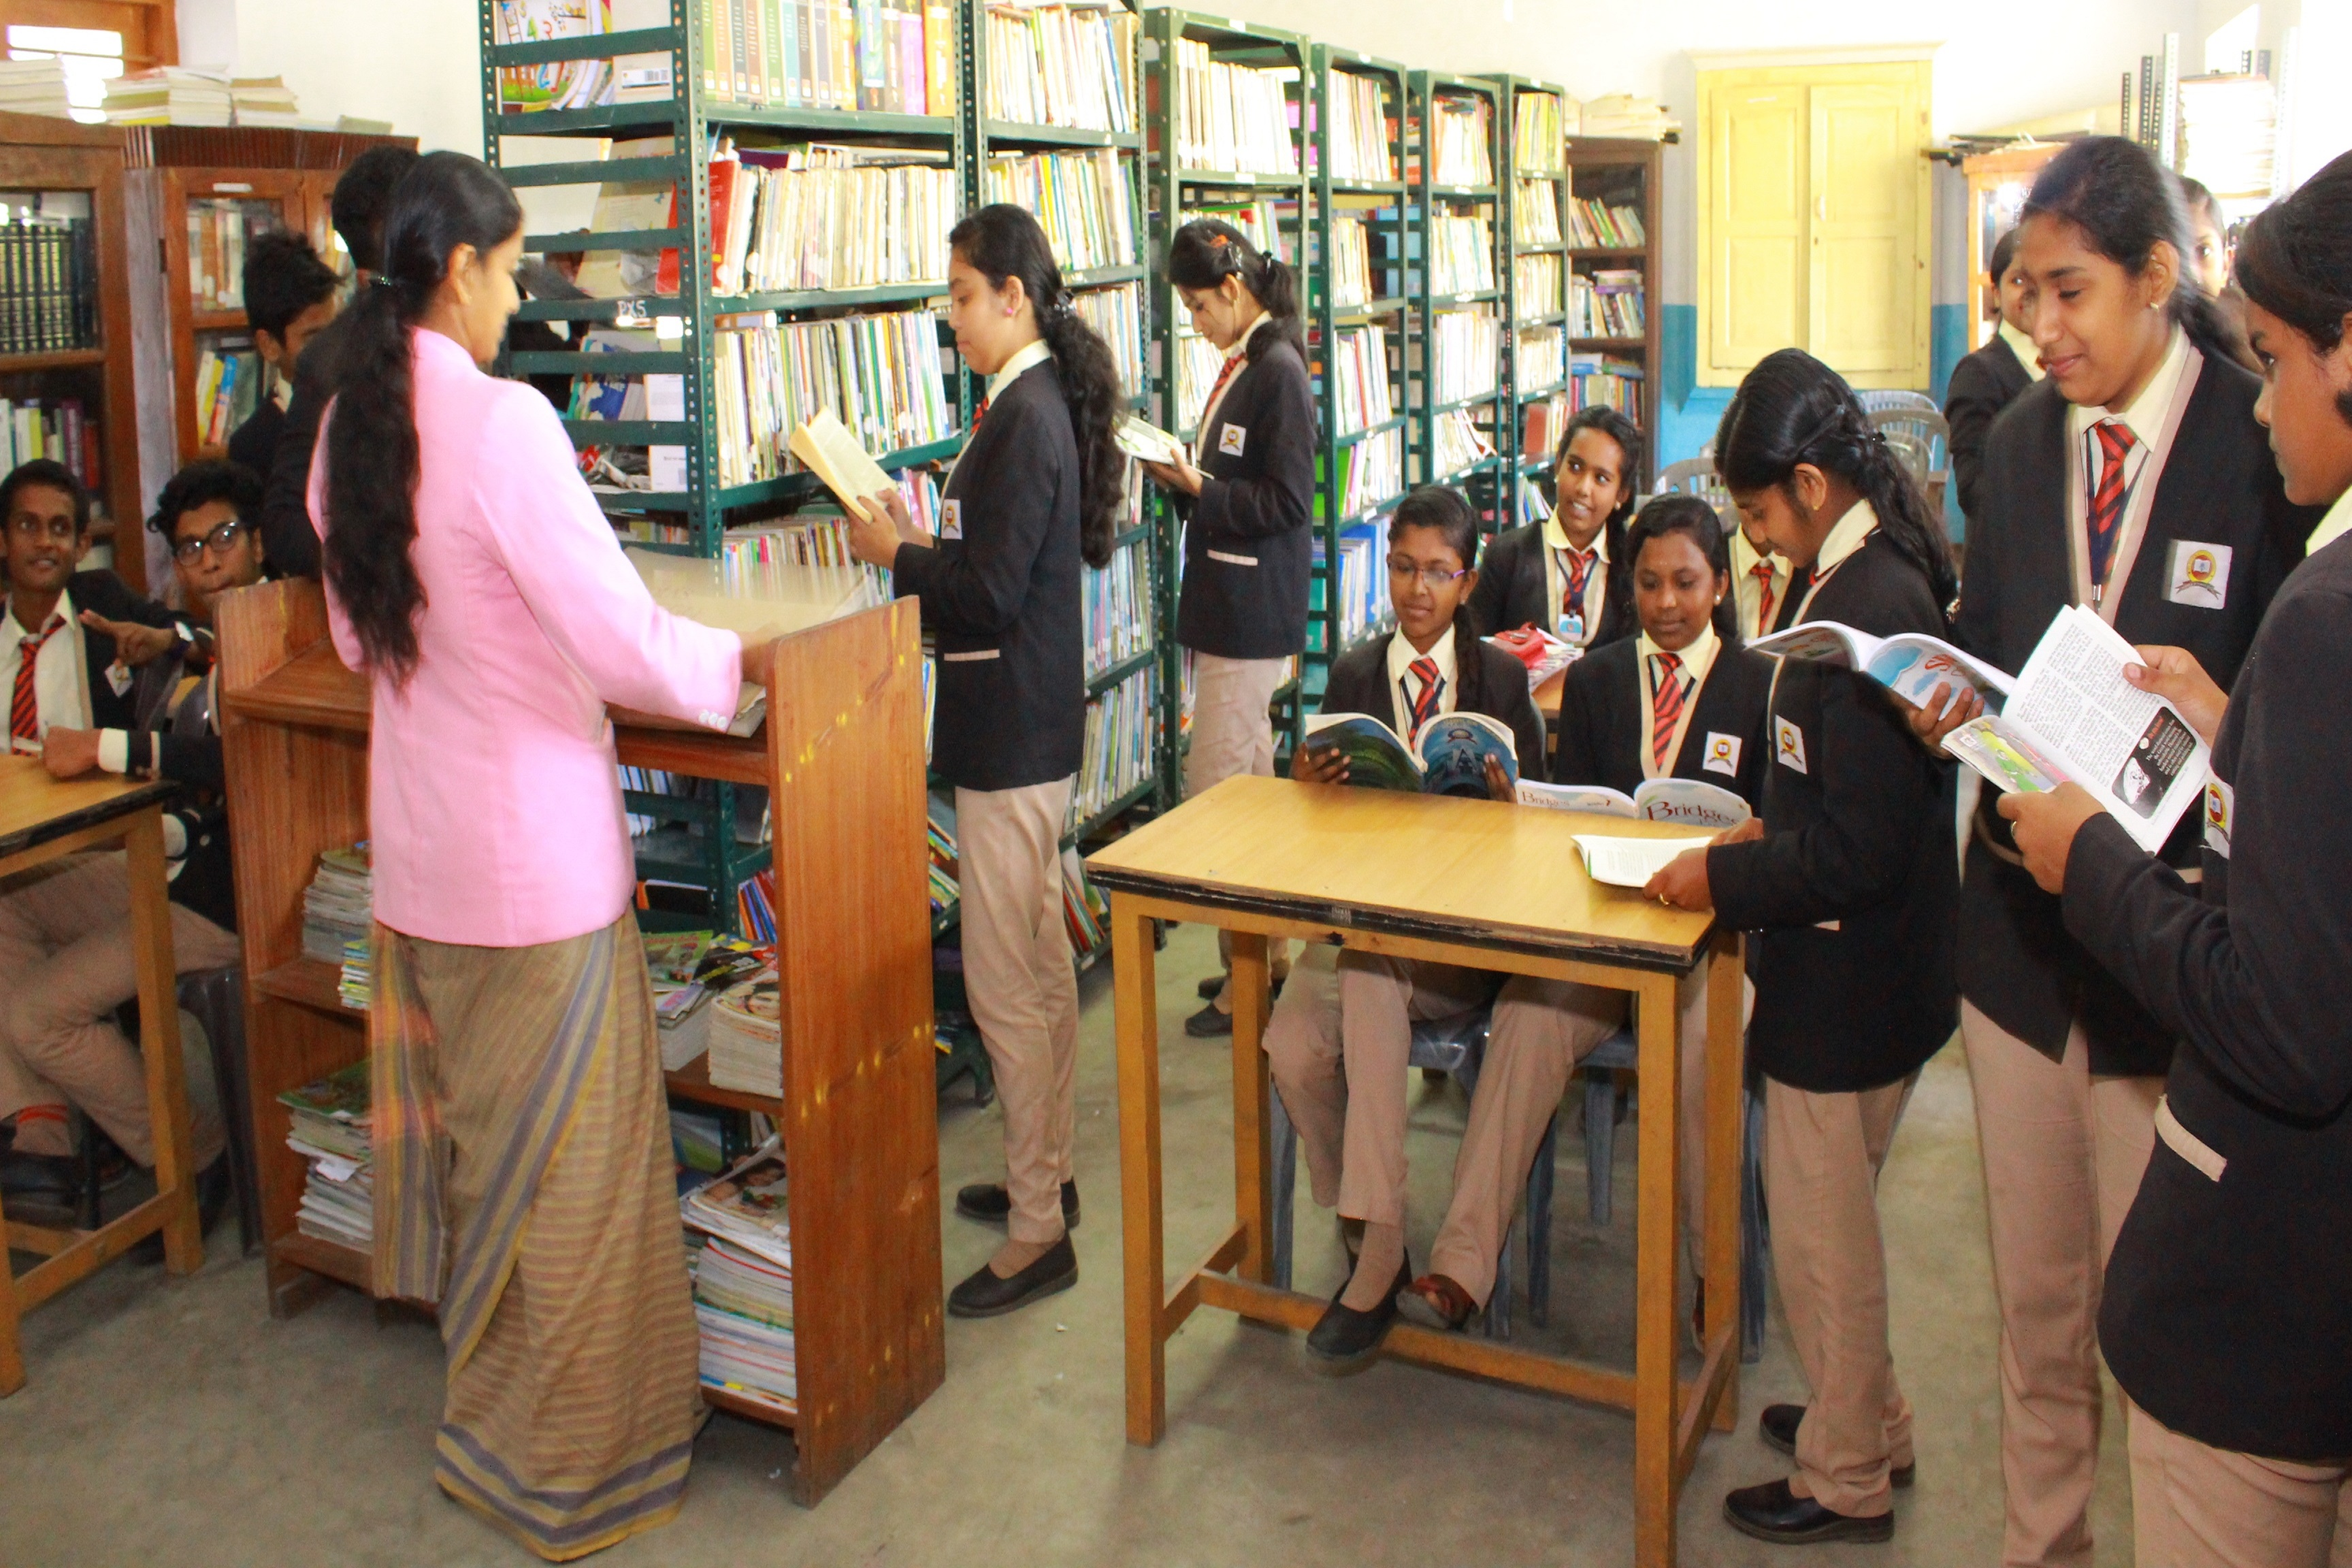 Reading room and Library